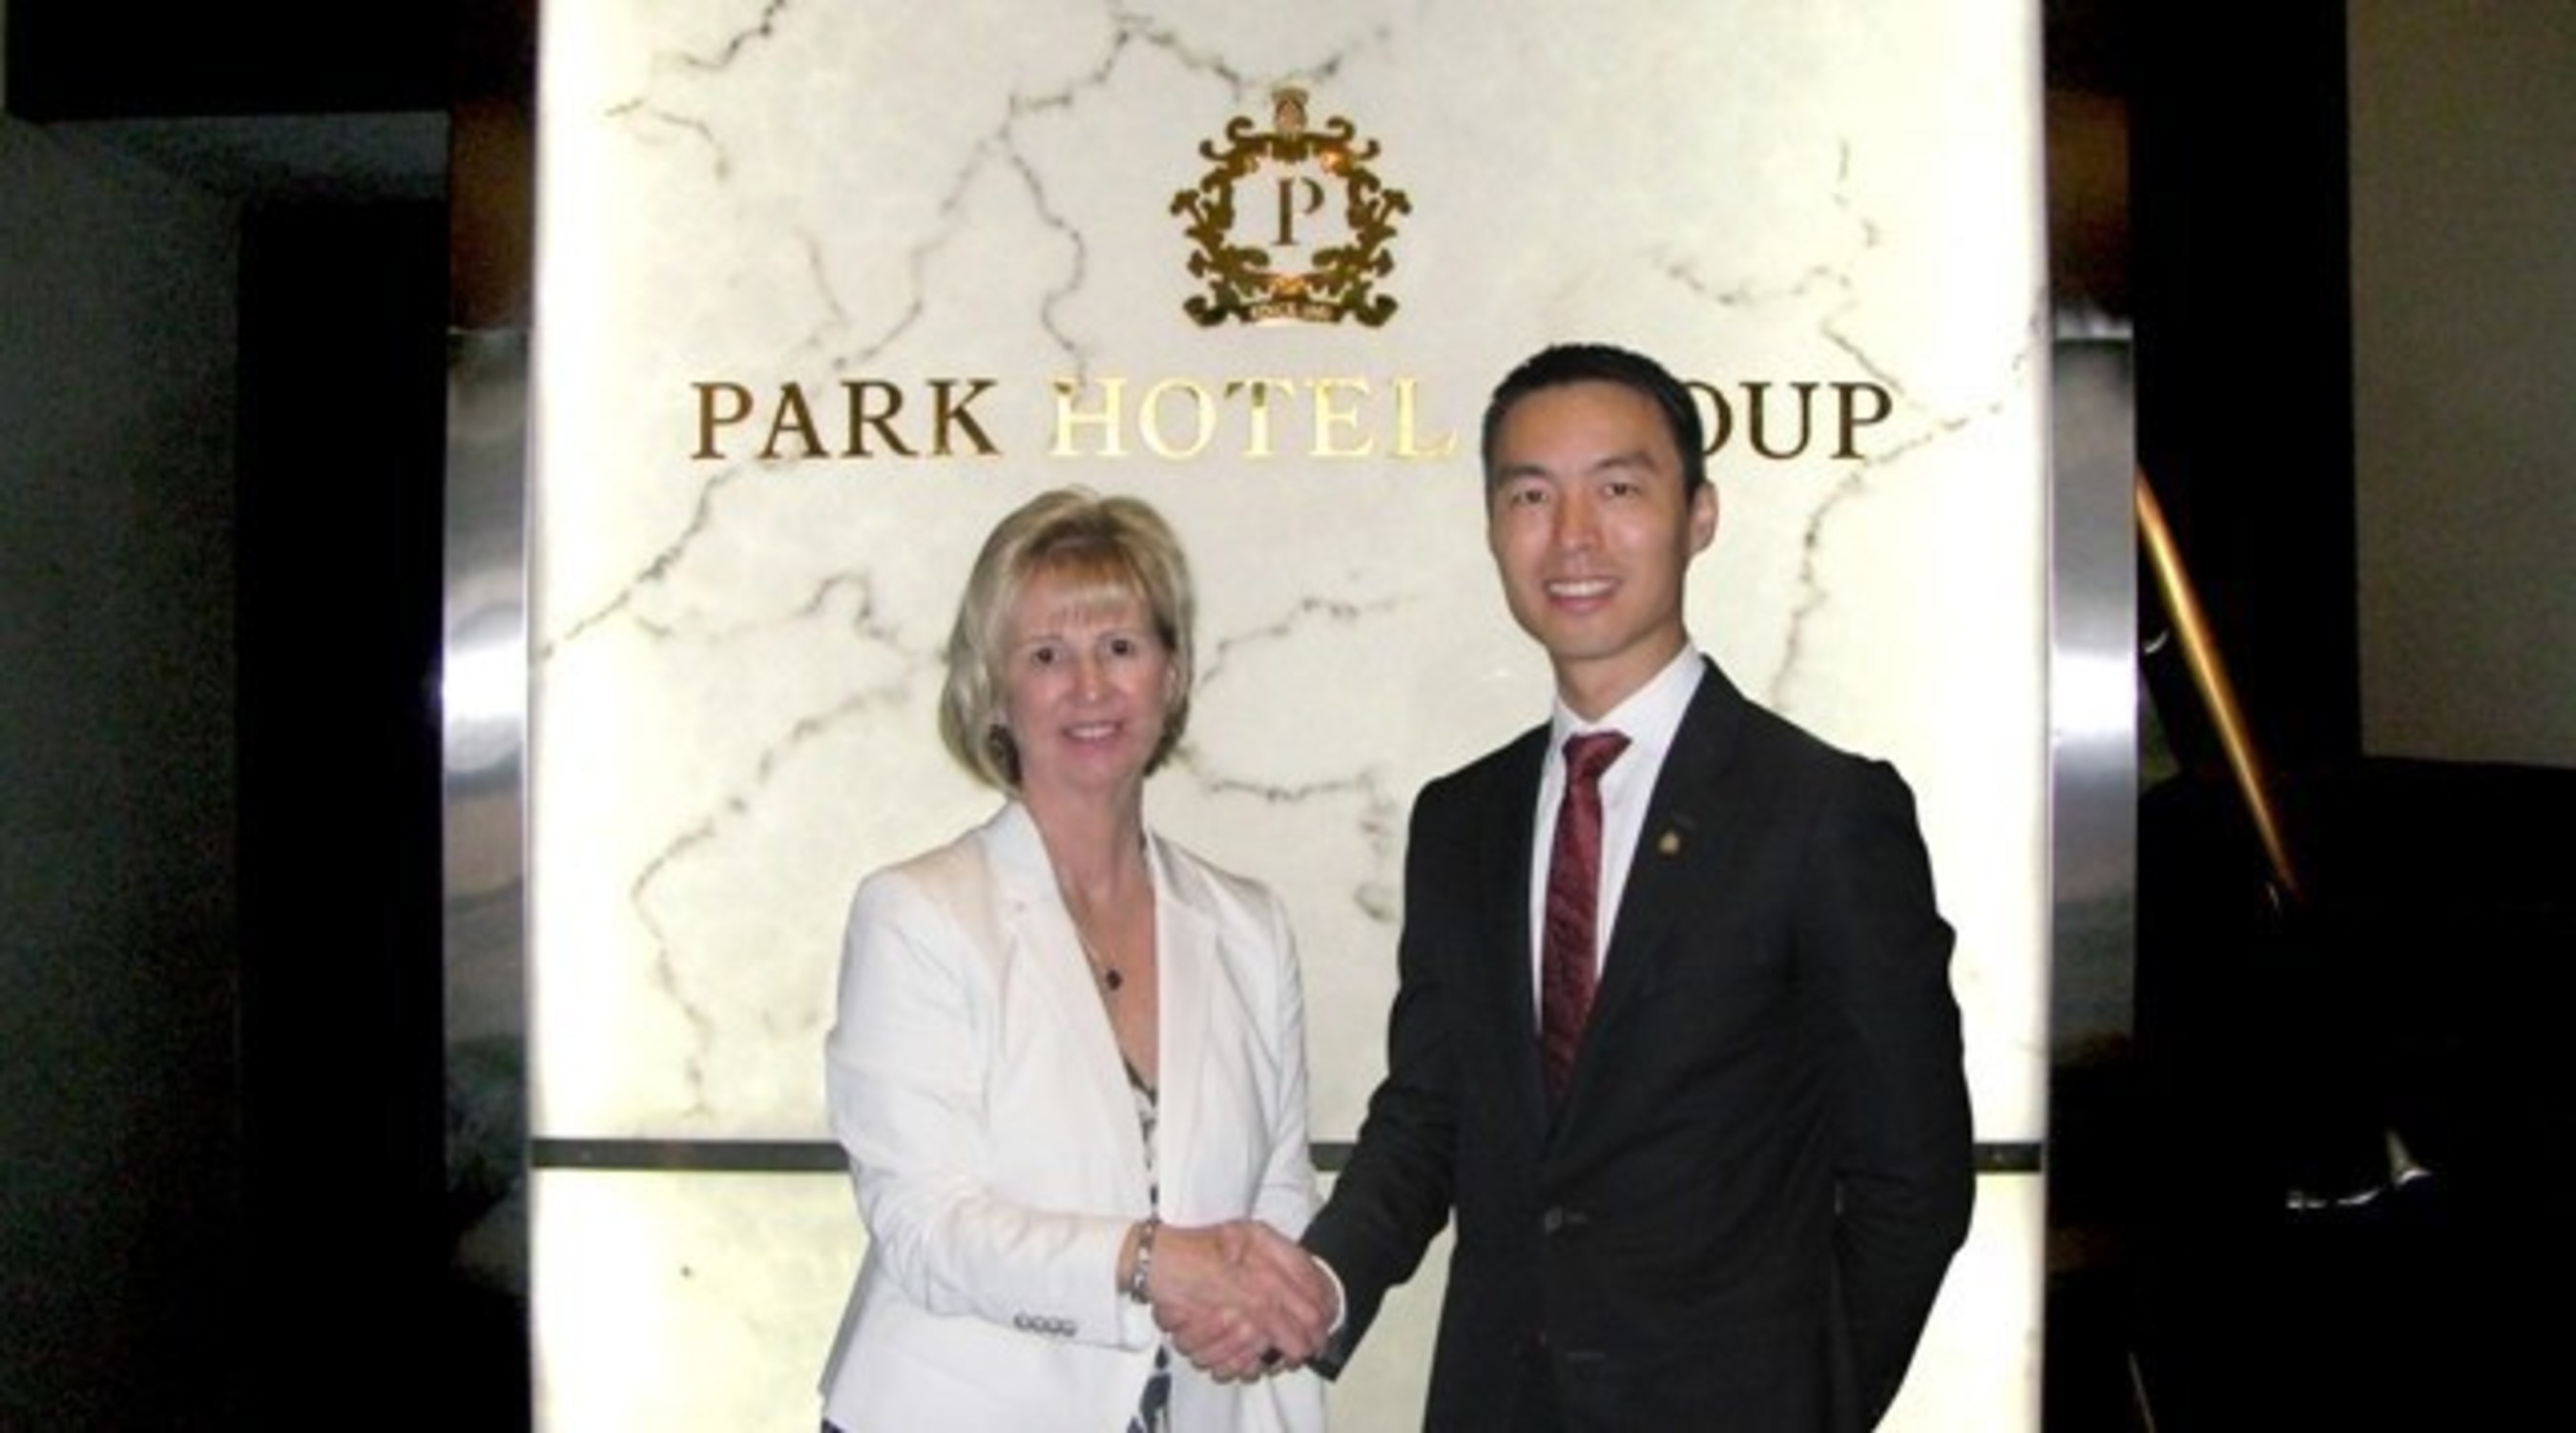 Allen Law, CEO of Park Hotel Group and Jenny Adams, CEO of Discover the World, extending a firm handshake symbolic of a robust partnership to come.